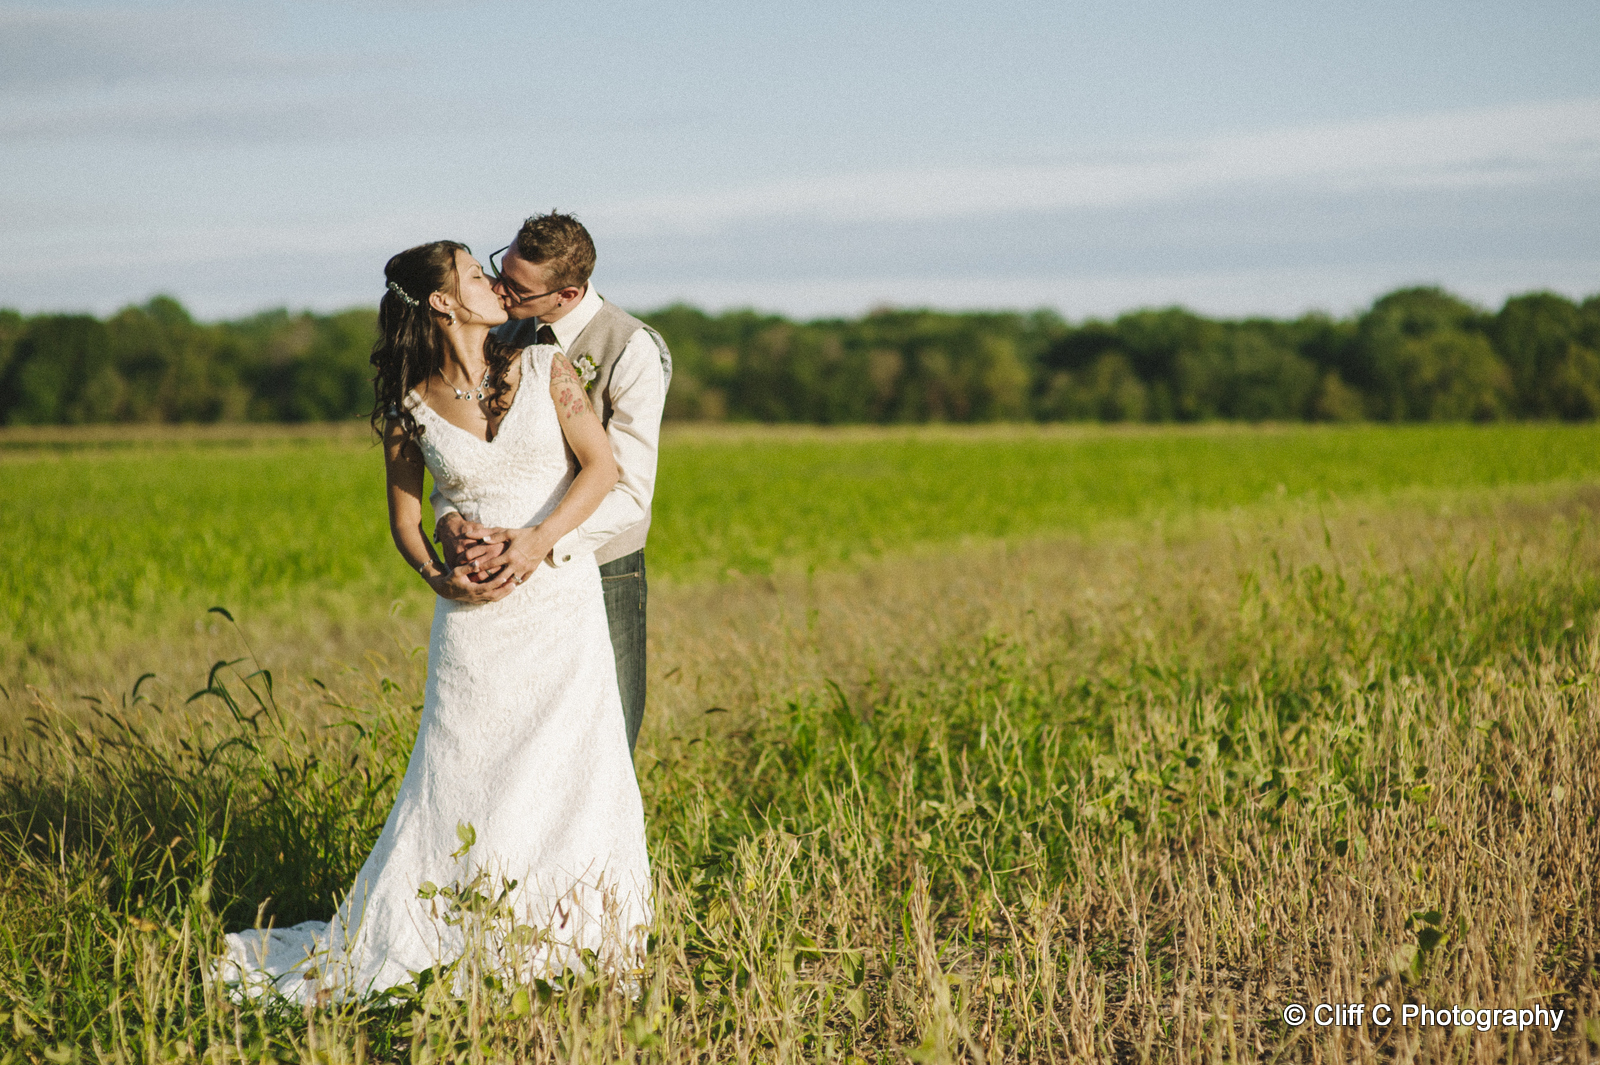 How to Find Your Dream Wedding Dress | Crystal Ballroom, Freehold NJ